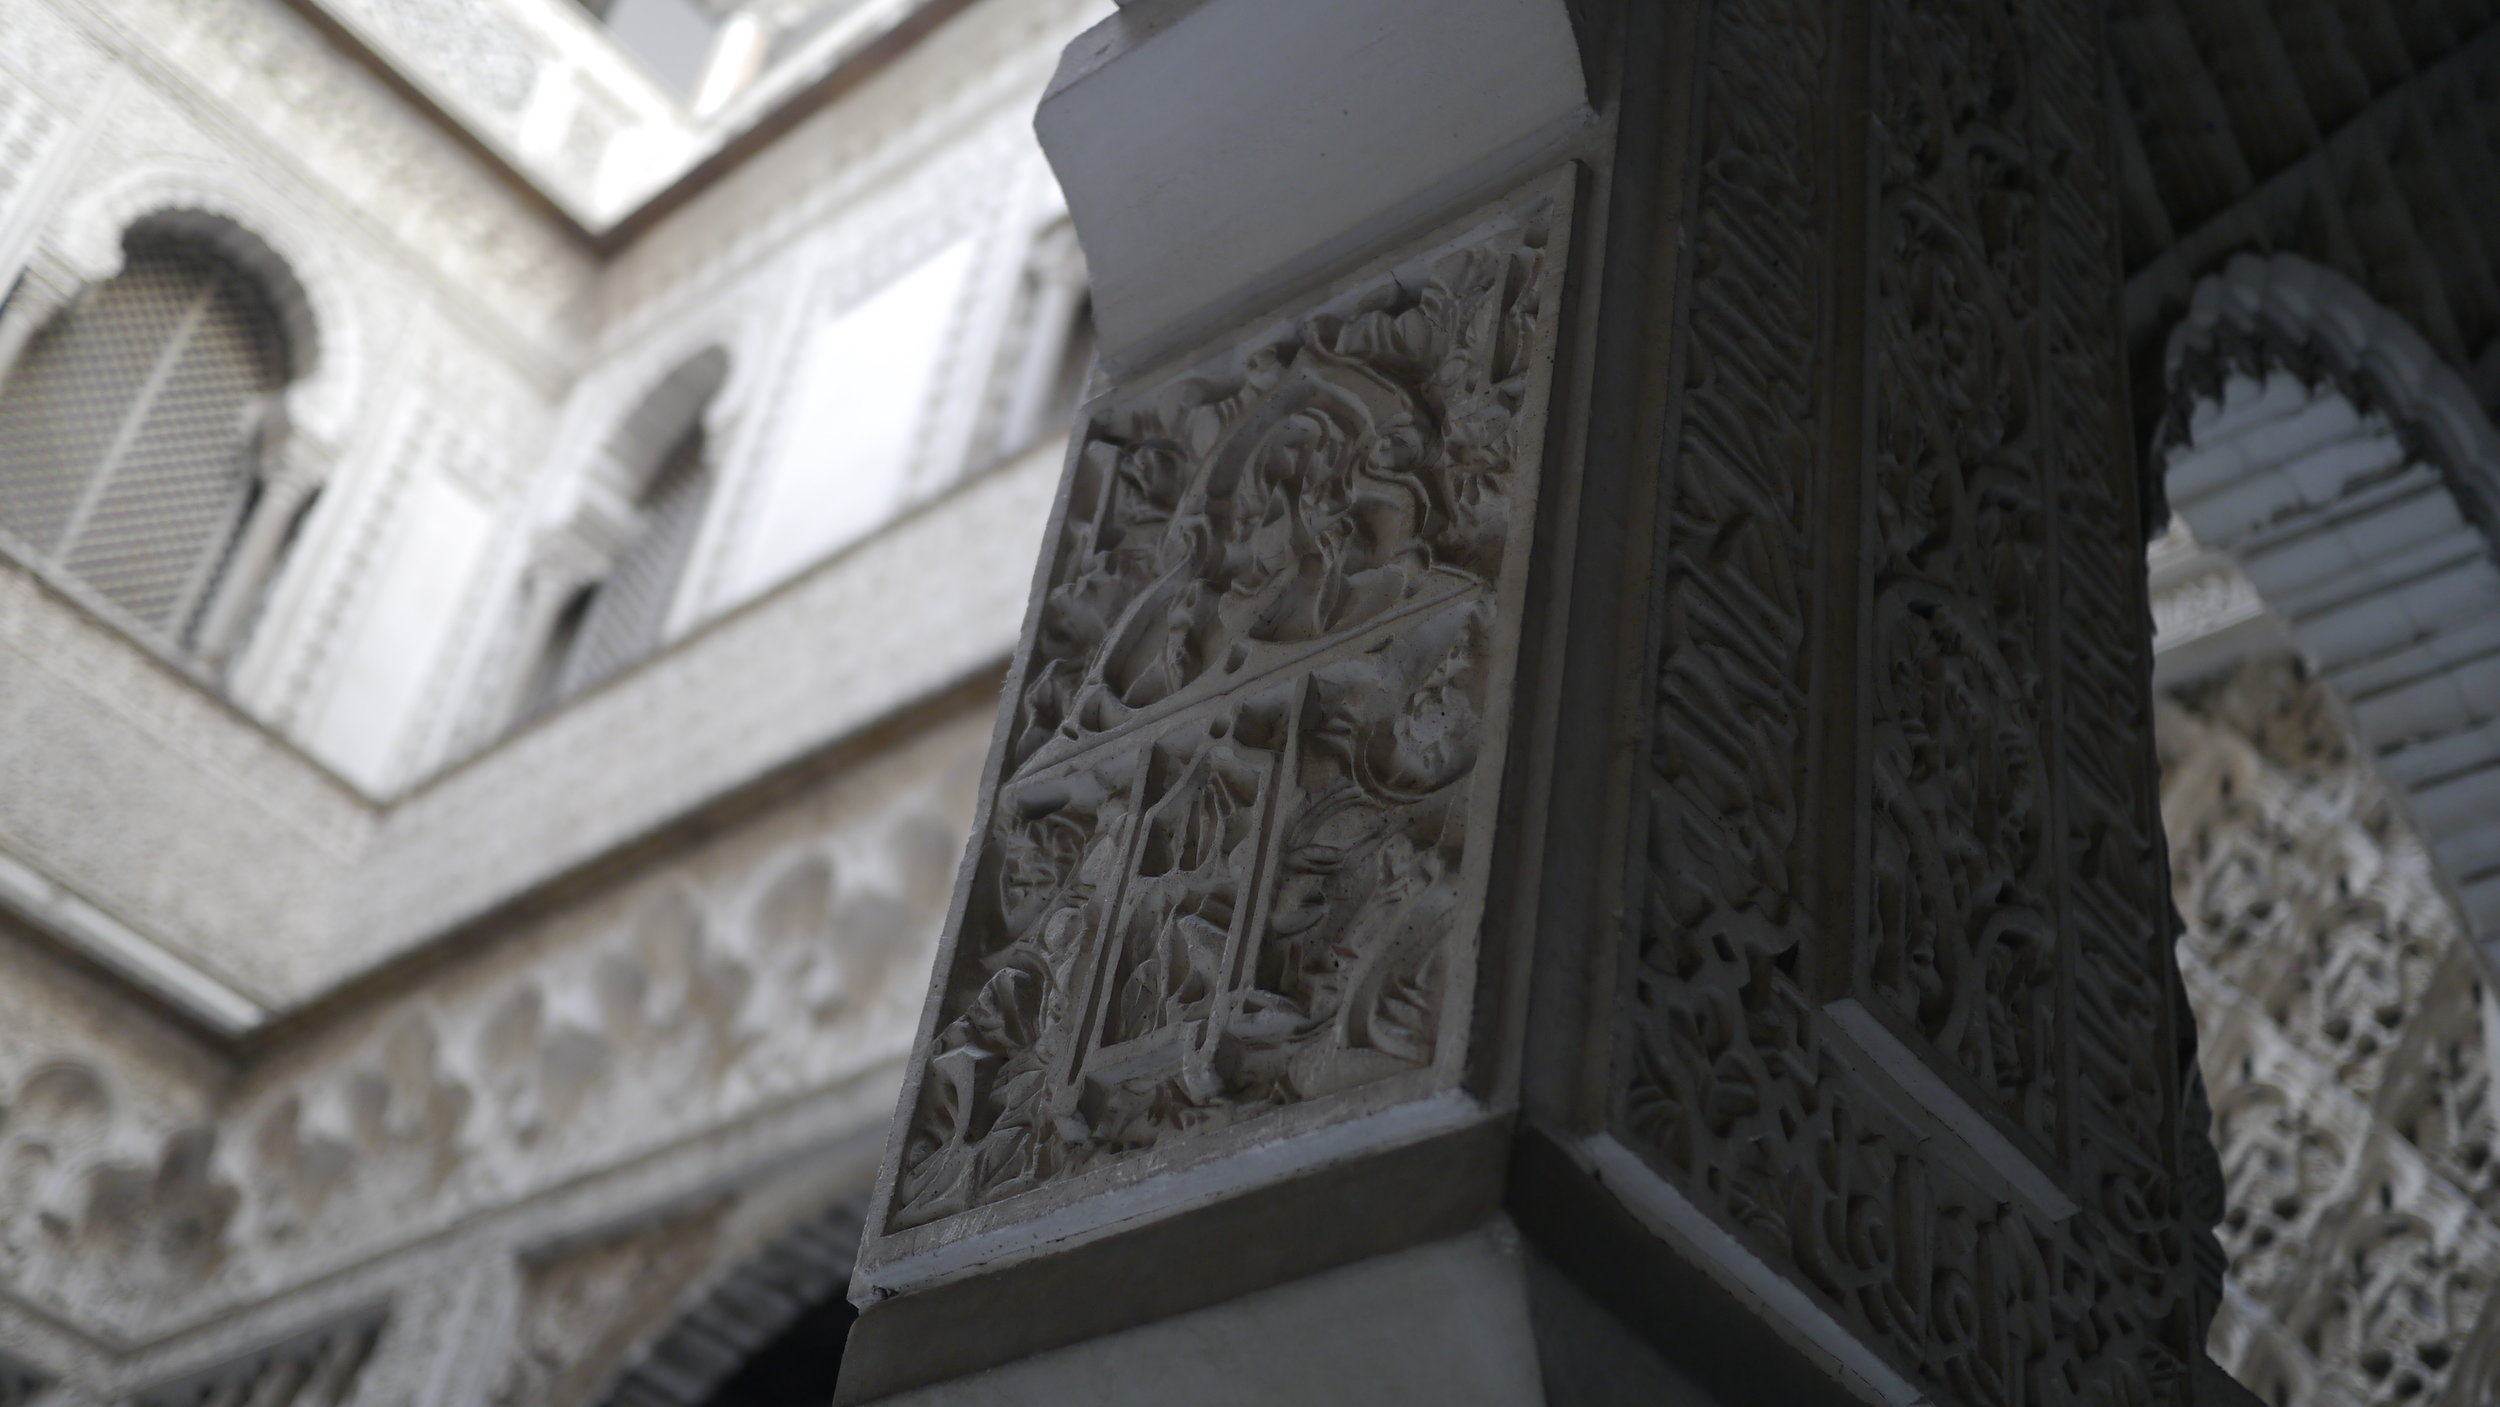 Elaborate carvings and repetition of layers upon layers of patterns in the Patio de las Munecas (Courtyard of the Dolls) at the Real Alcázar, Seville, Spain. December 2016.